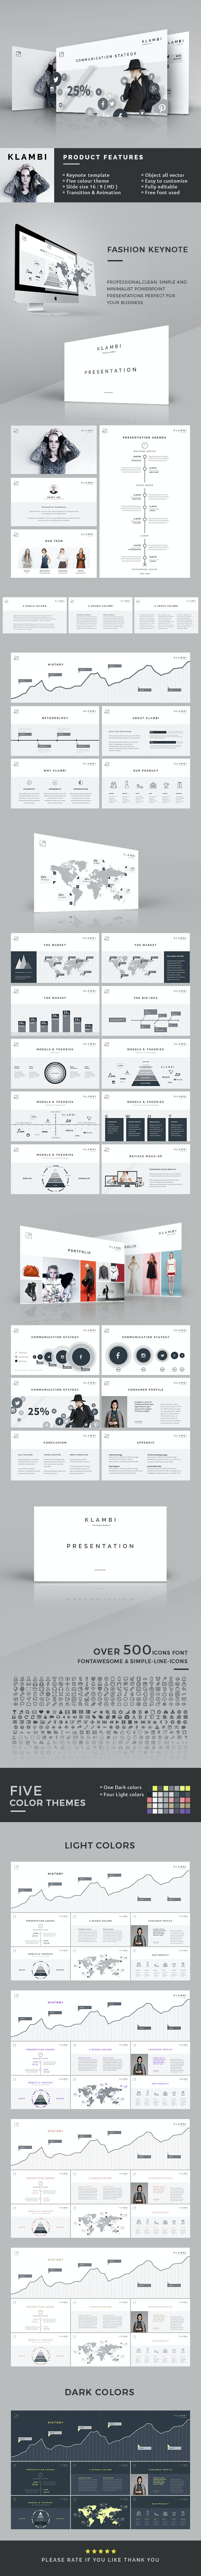 Fashion Keynote Template - Creative Keynote Templates